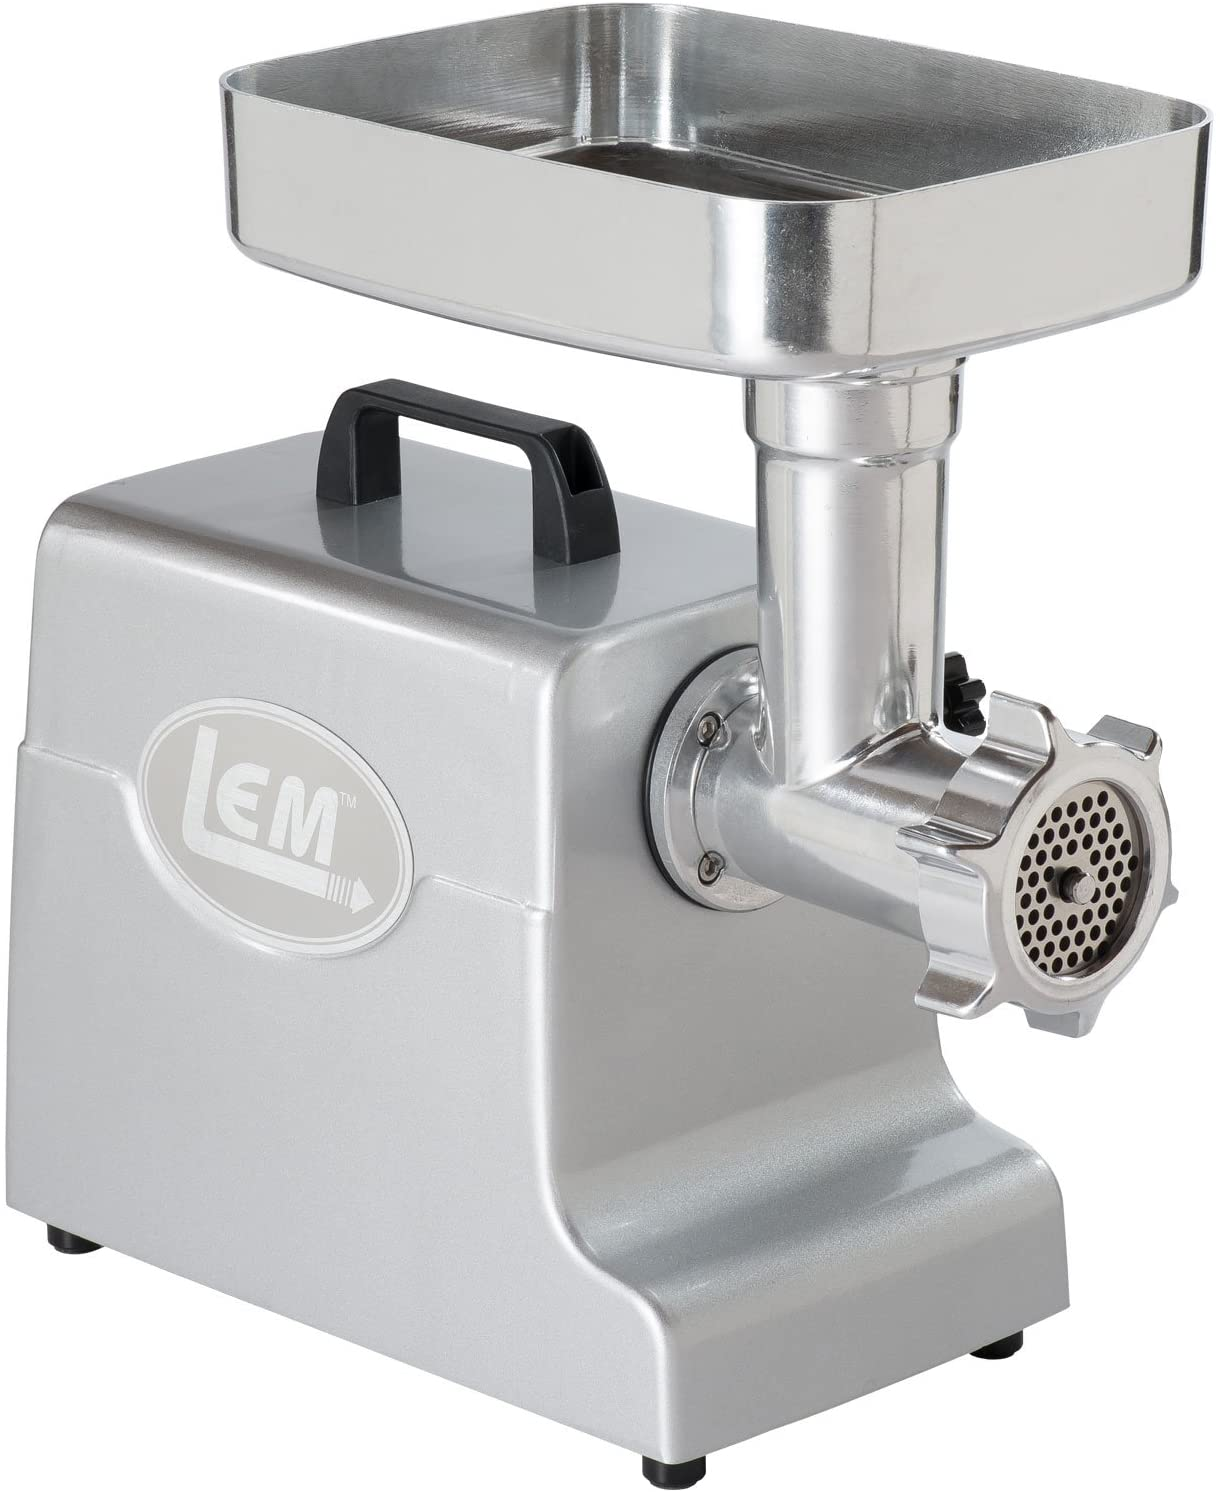 LEM Products 1158 Mighty Bite Meat Grinder